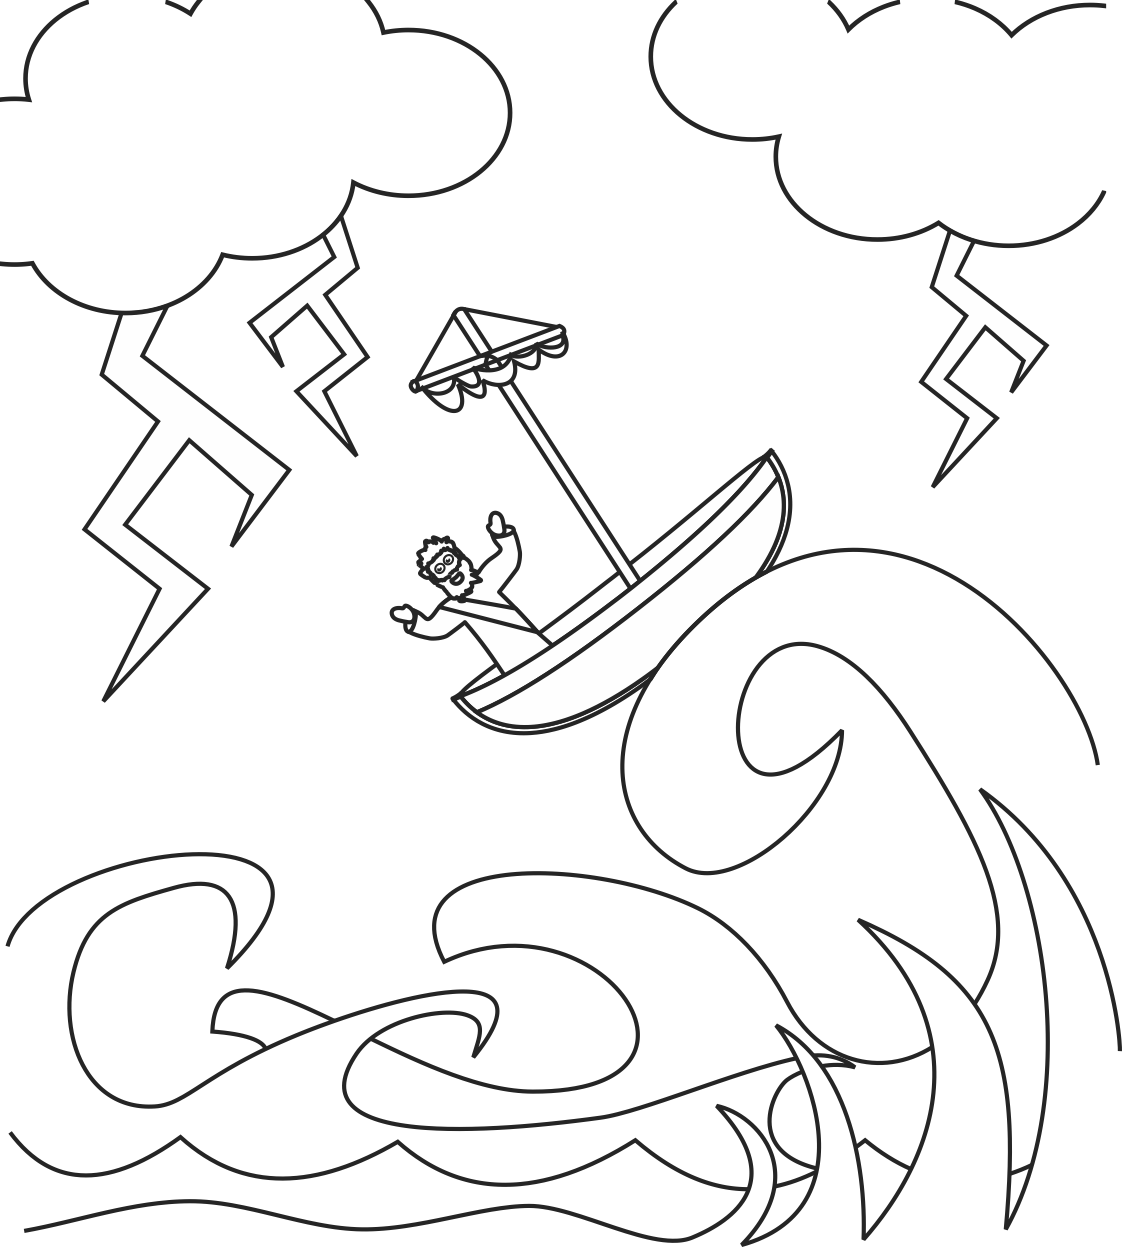 jesus calms the storm coloring page my children39s curriculum jesus calms the storm jesus storm the coloring page calms